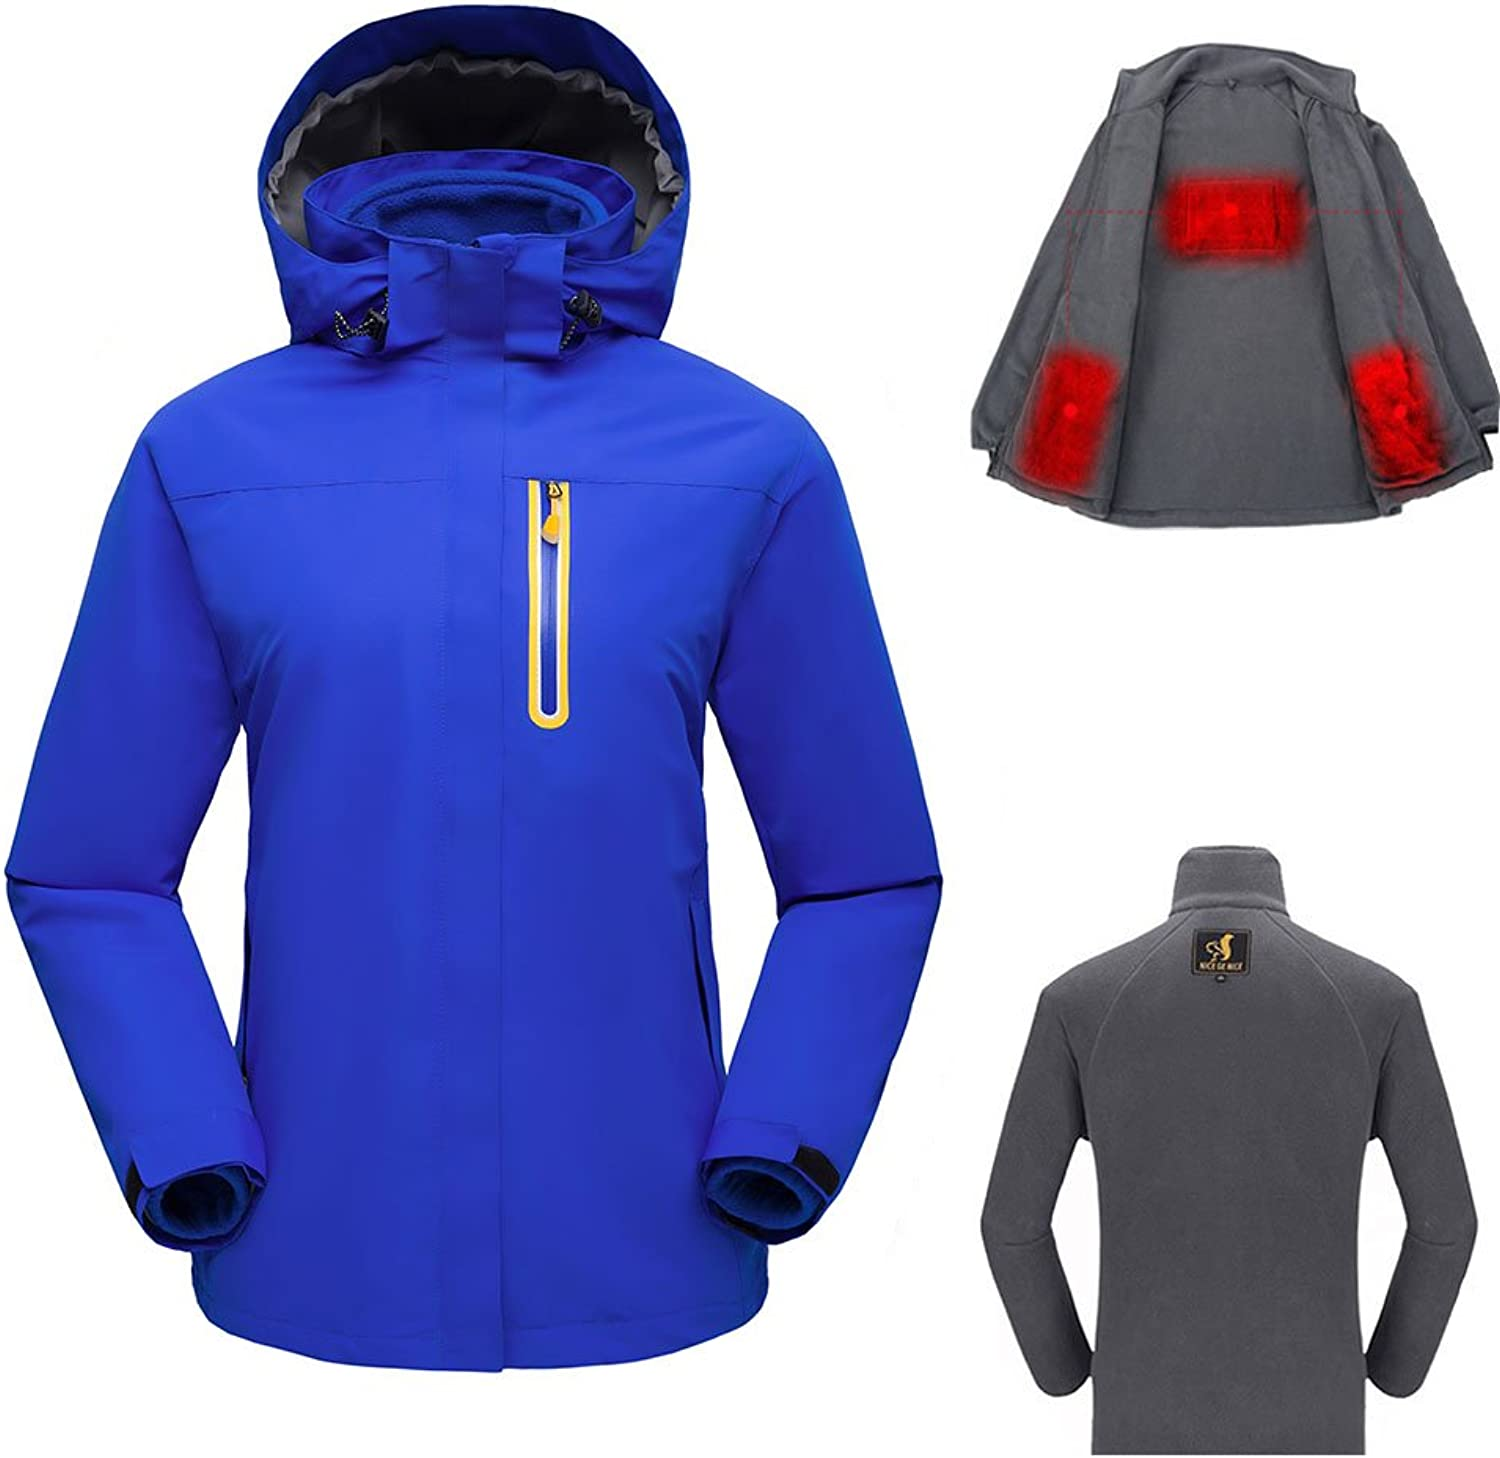 SmartHS Women's Heated Jacket Kit, Outdoor Warm Jacket with Detachable USB Heating Fleece Liner